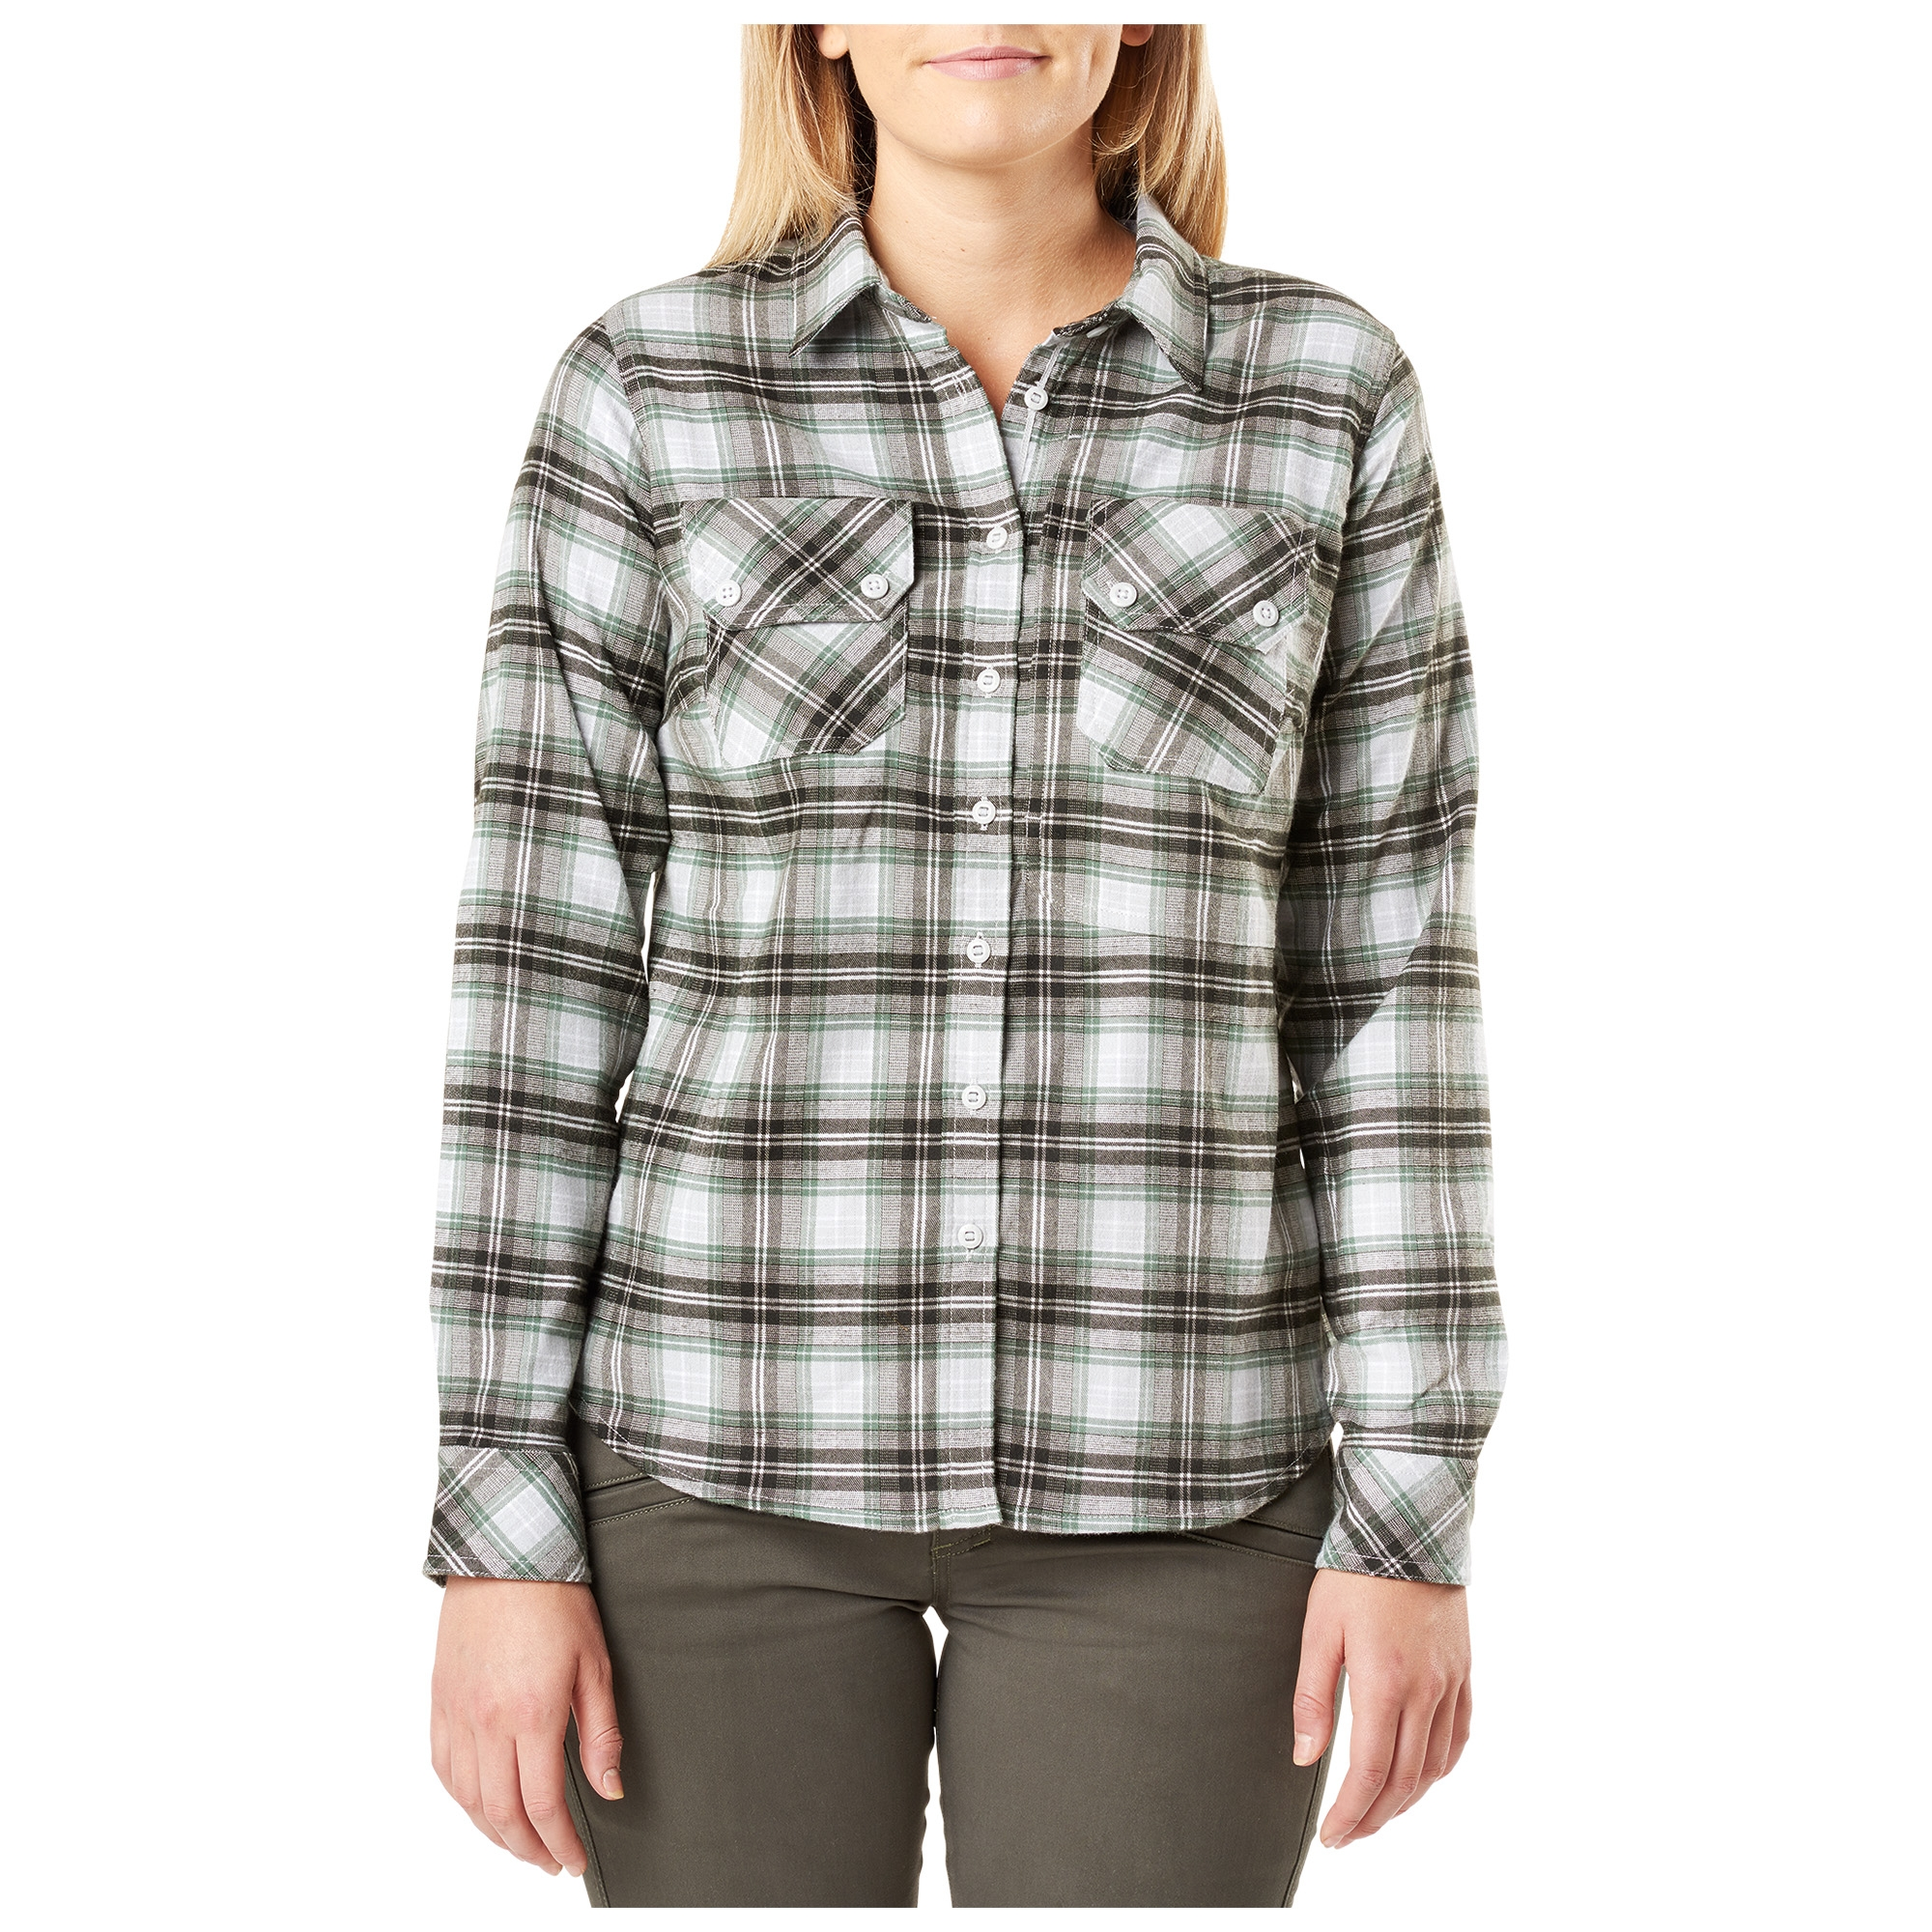 5.11 Tactical Women's Hera Flannel (Green)